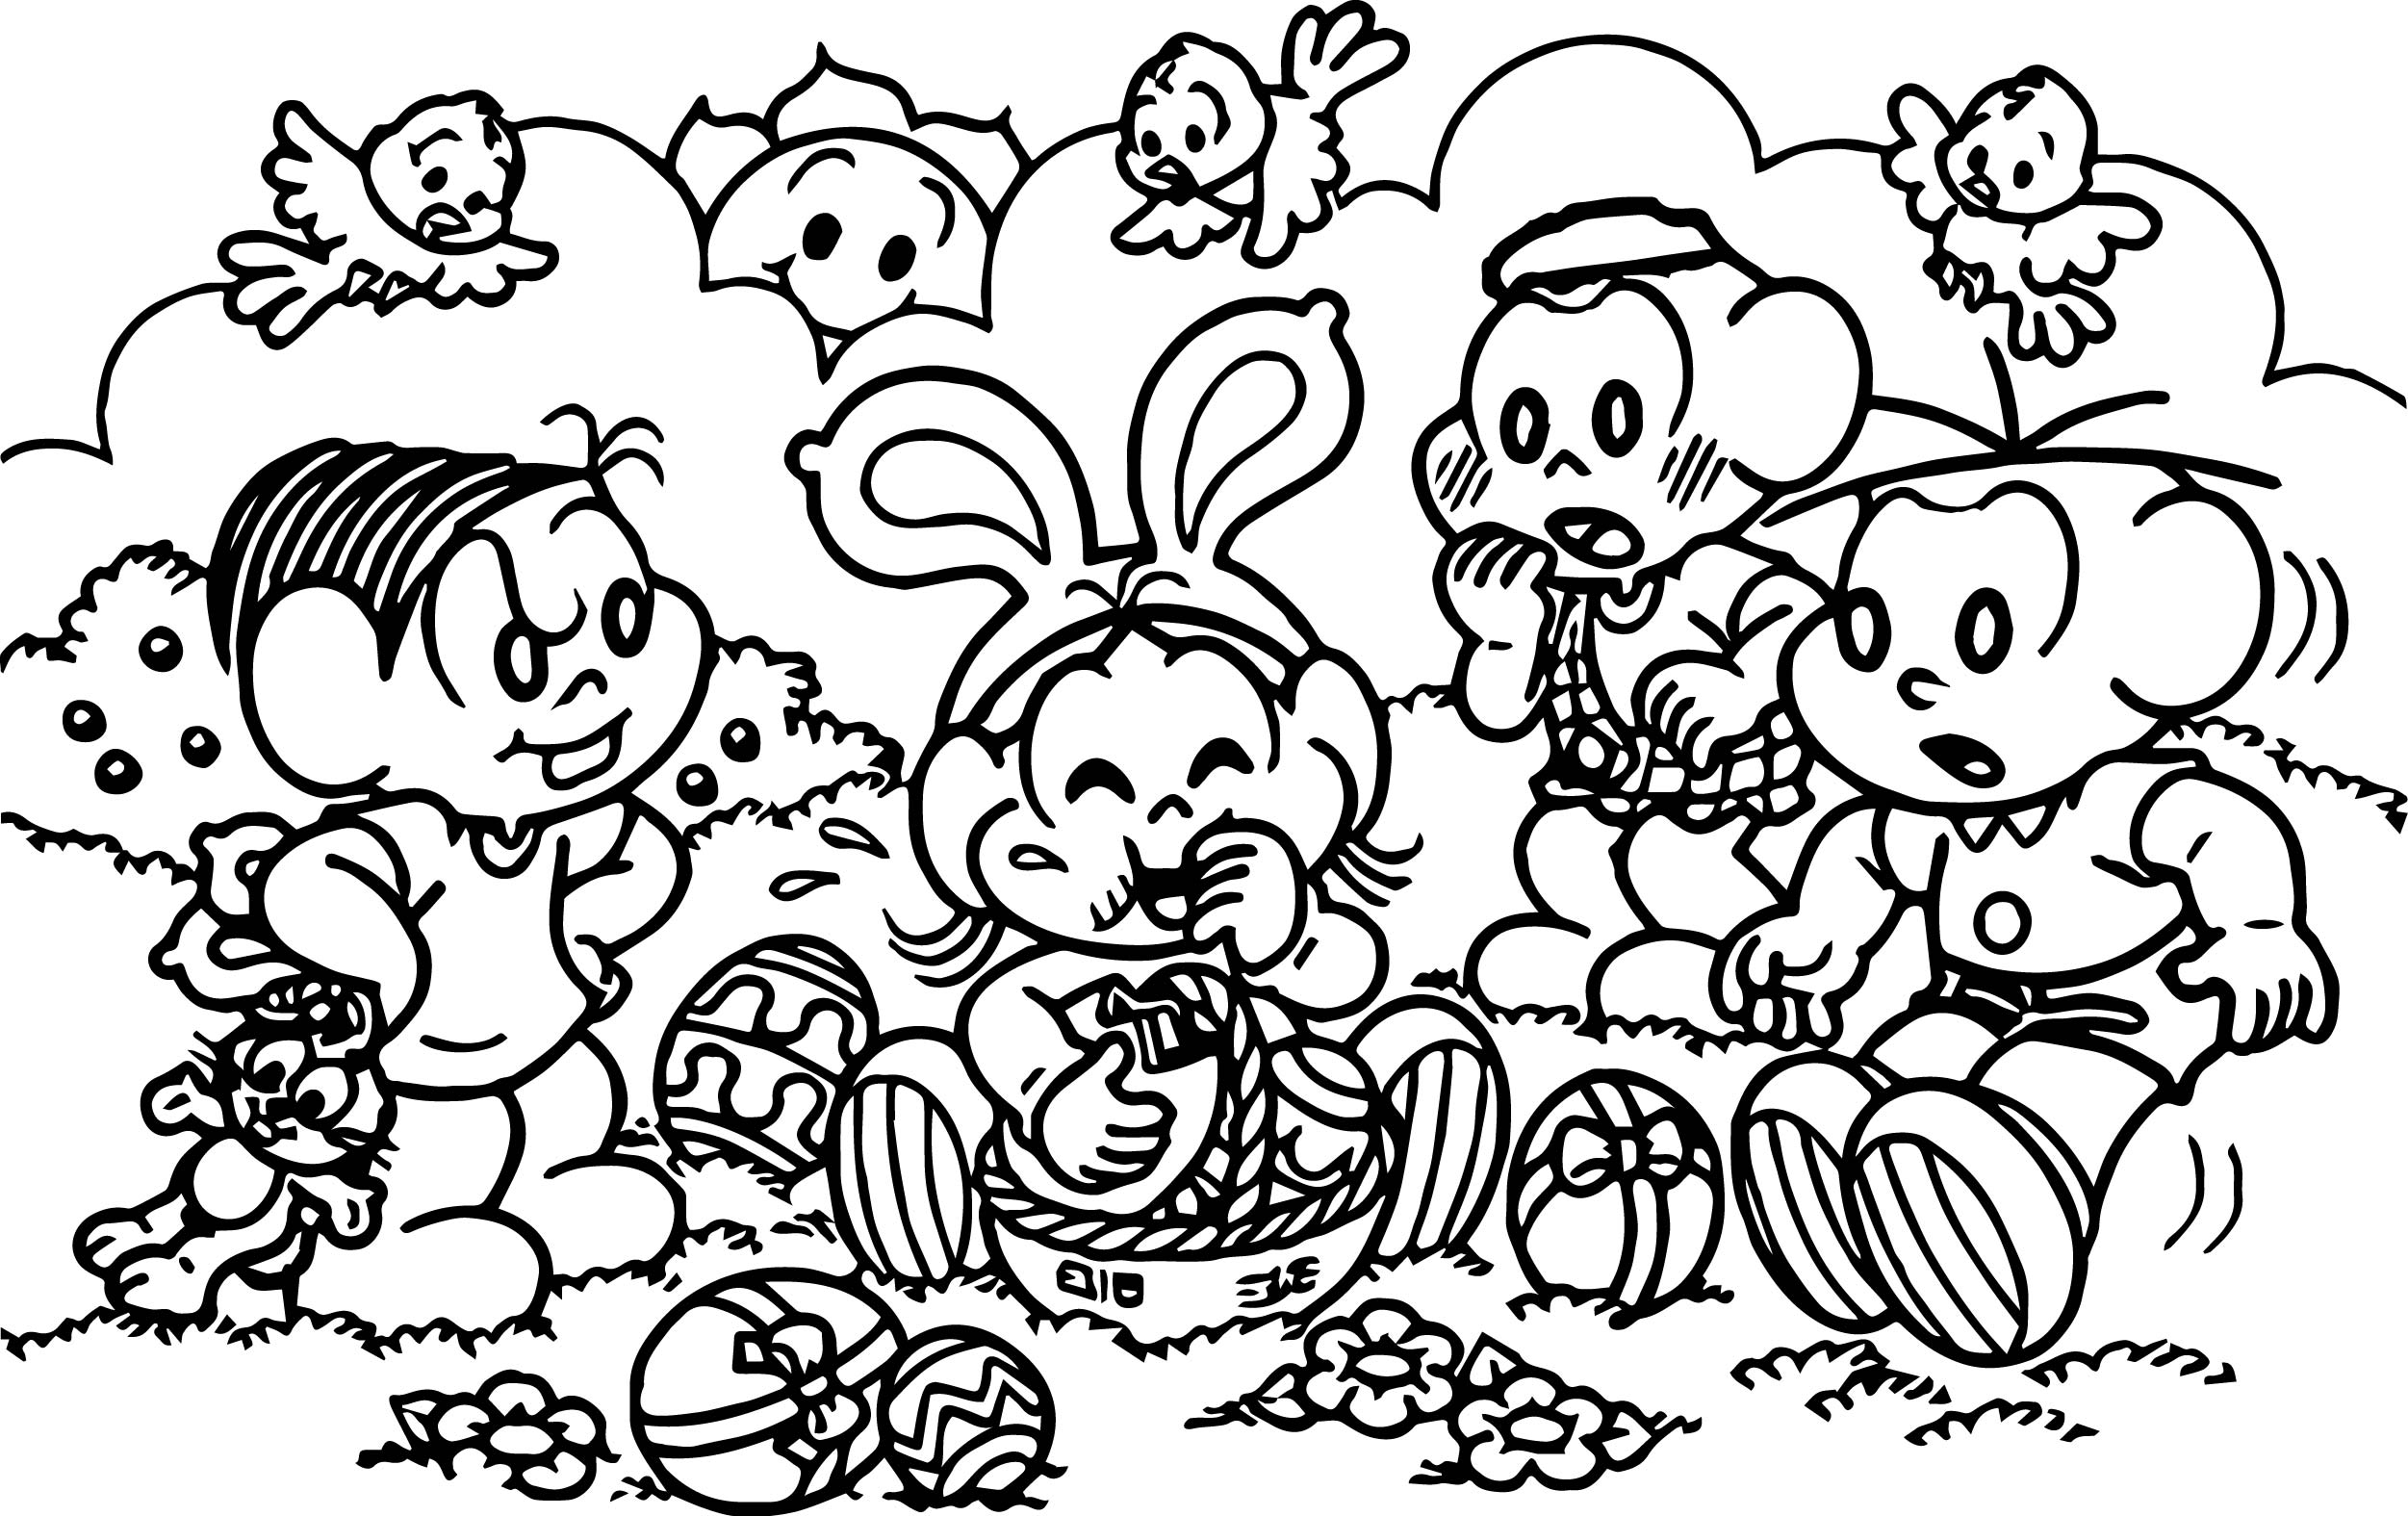 Turma Da Monica Eating Easter Egg Coloring Page